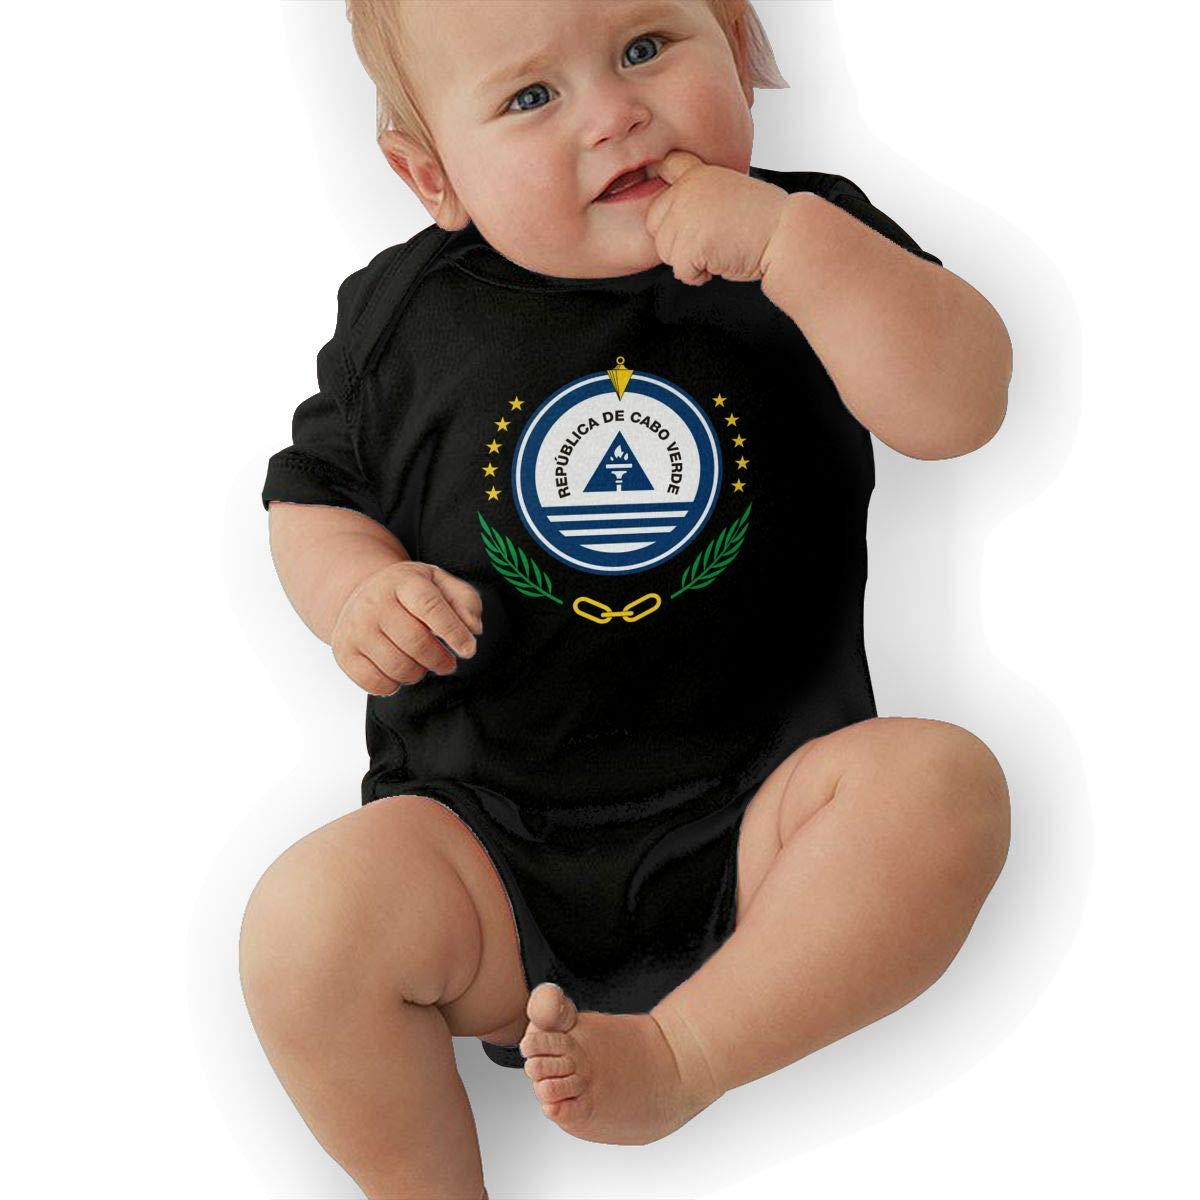 HappyLifea Coat of Arms of Cape Verde Newborn Baby Short Sleeve Romper Infant Summer Clothing